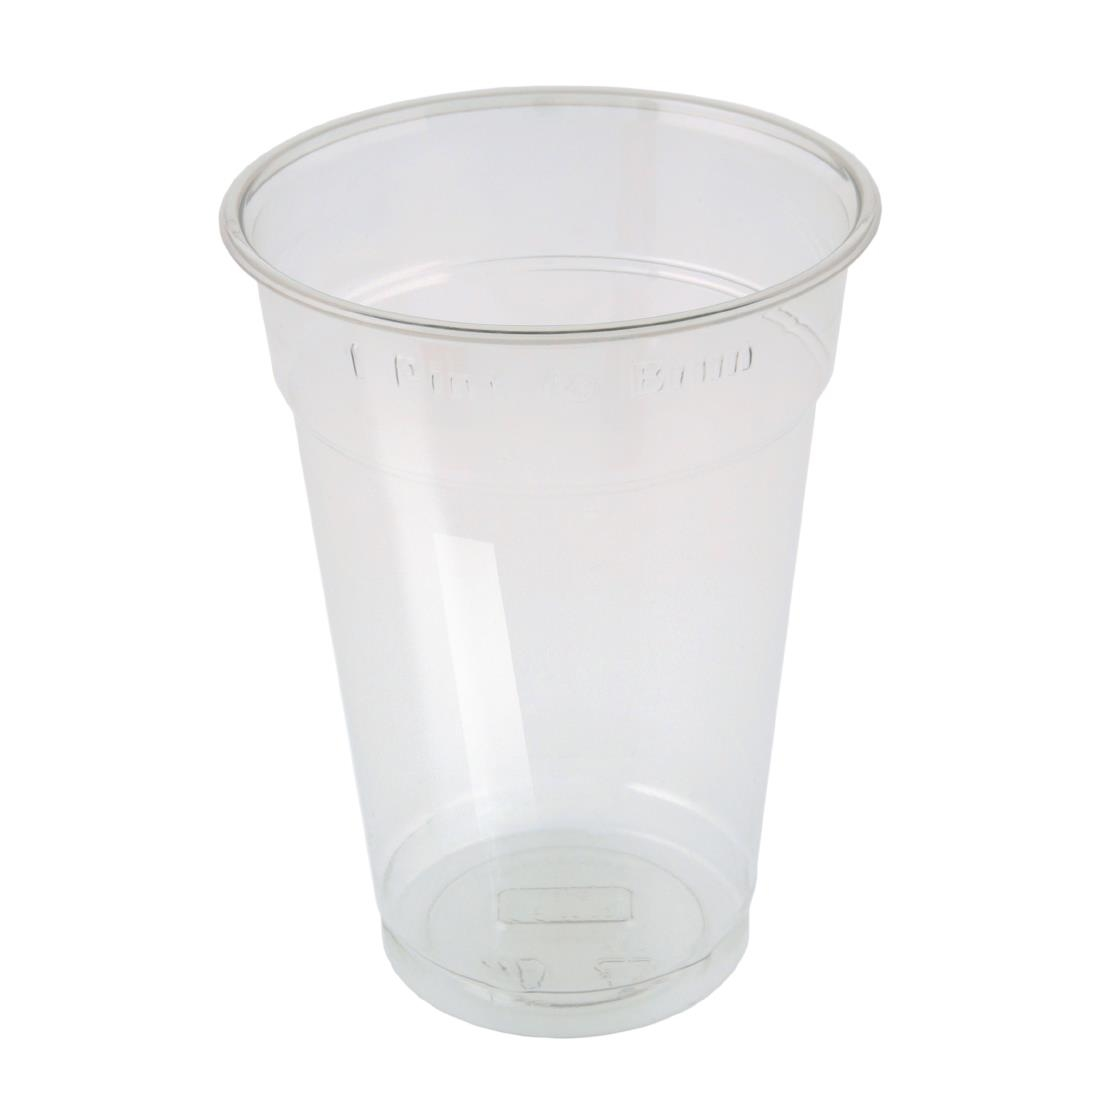 Image of Huhtamaki Disposable Pint to Brim Tumbler (Pack of 500) Pack of 500